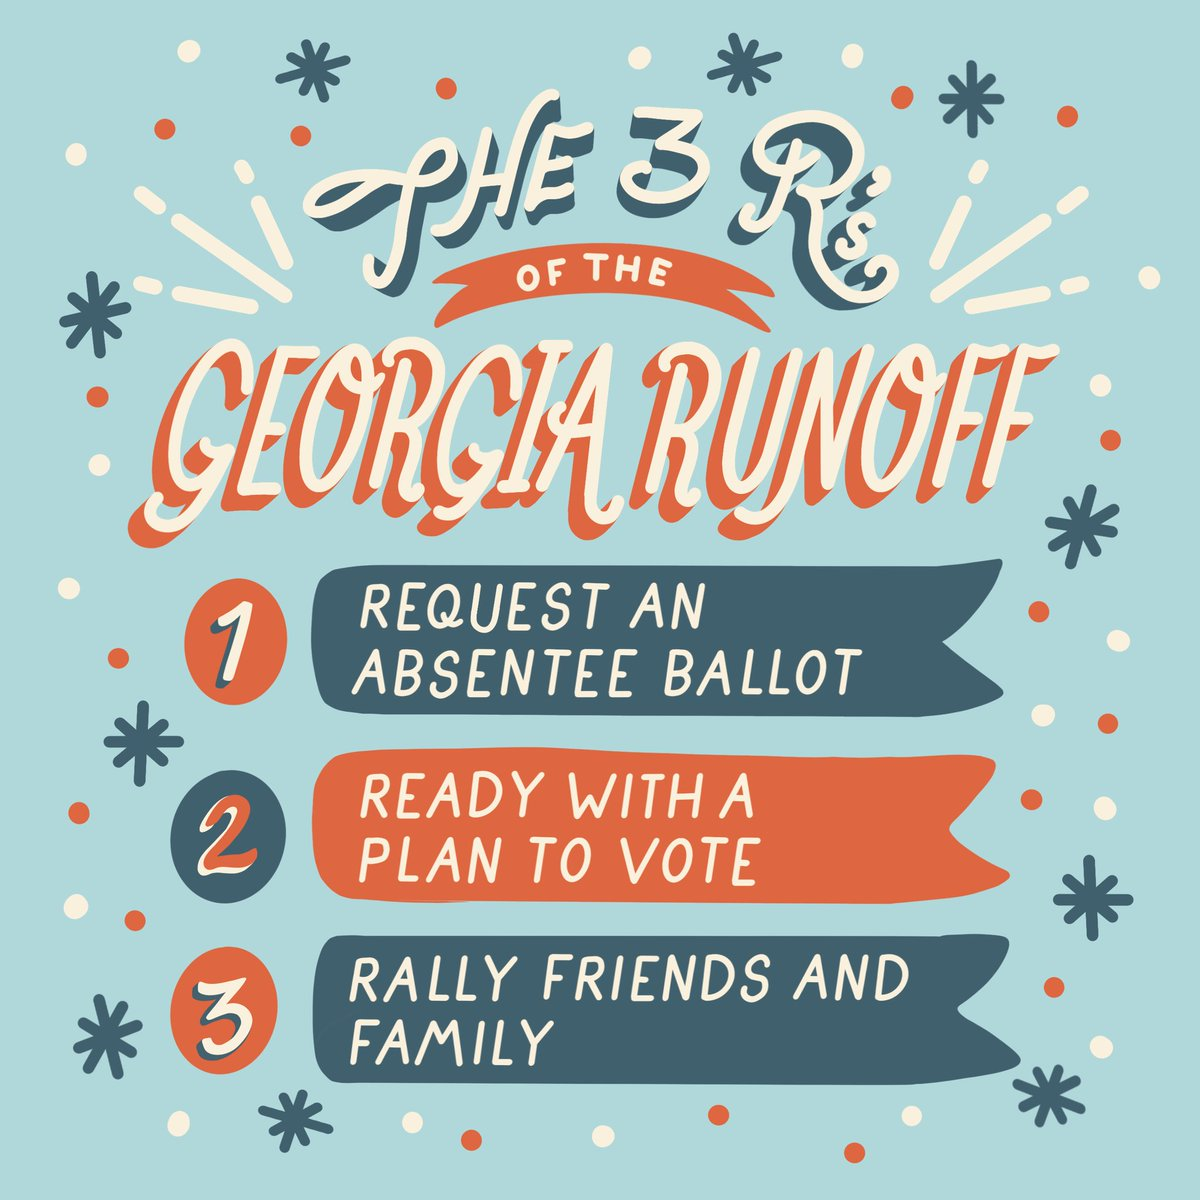 And since we're talking about Georgia, don't forget that the DEADLINE to register to vote is DEC. 7th! Less than a week away.  has links to check your registration status, request an absentee ballot, and much more. 🍑⏰  #govote #georgia